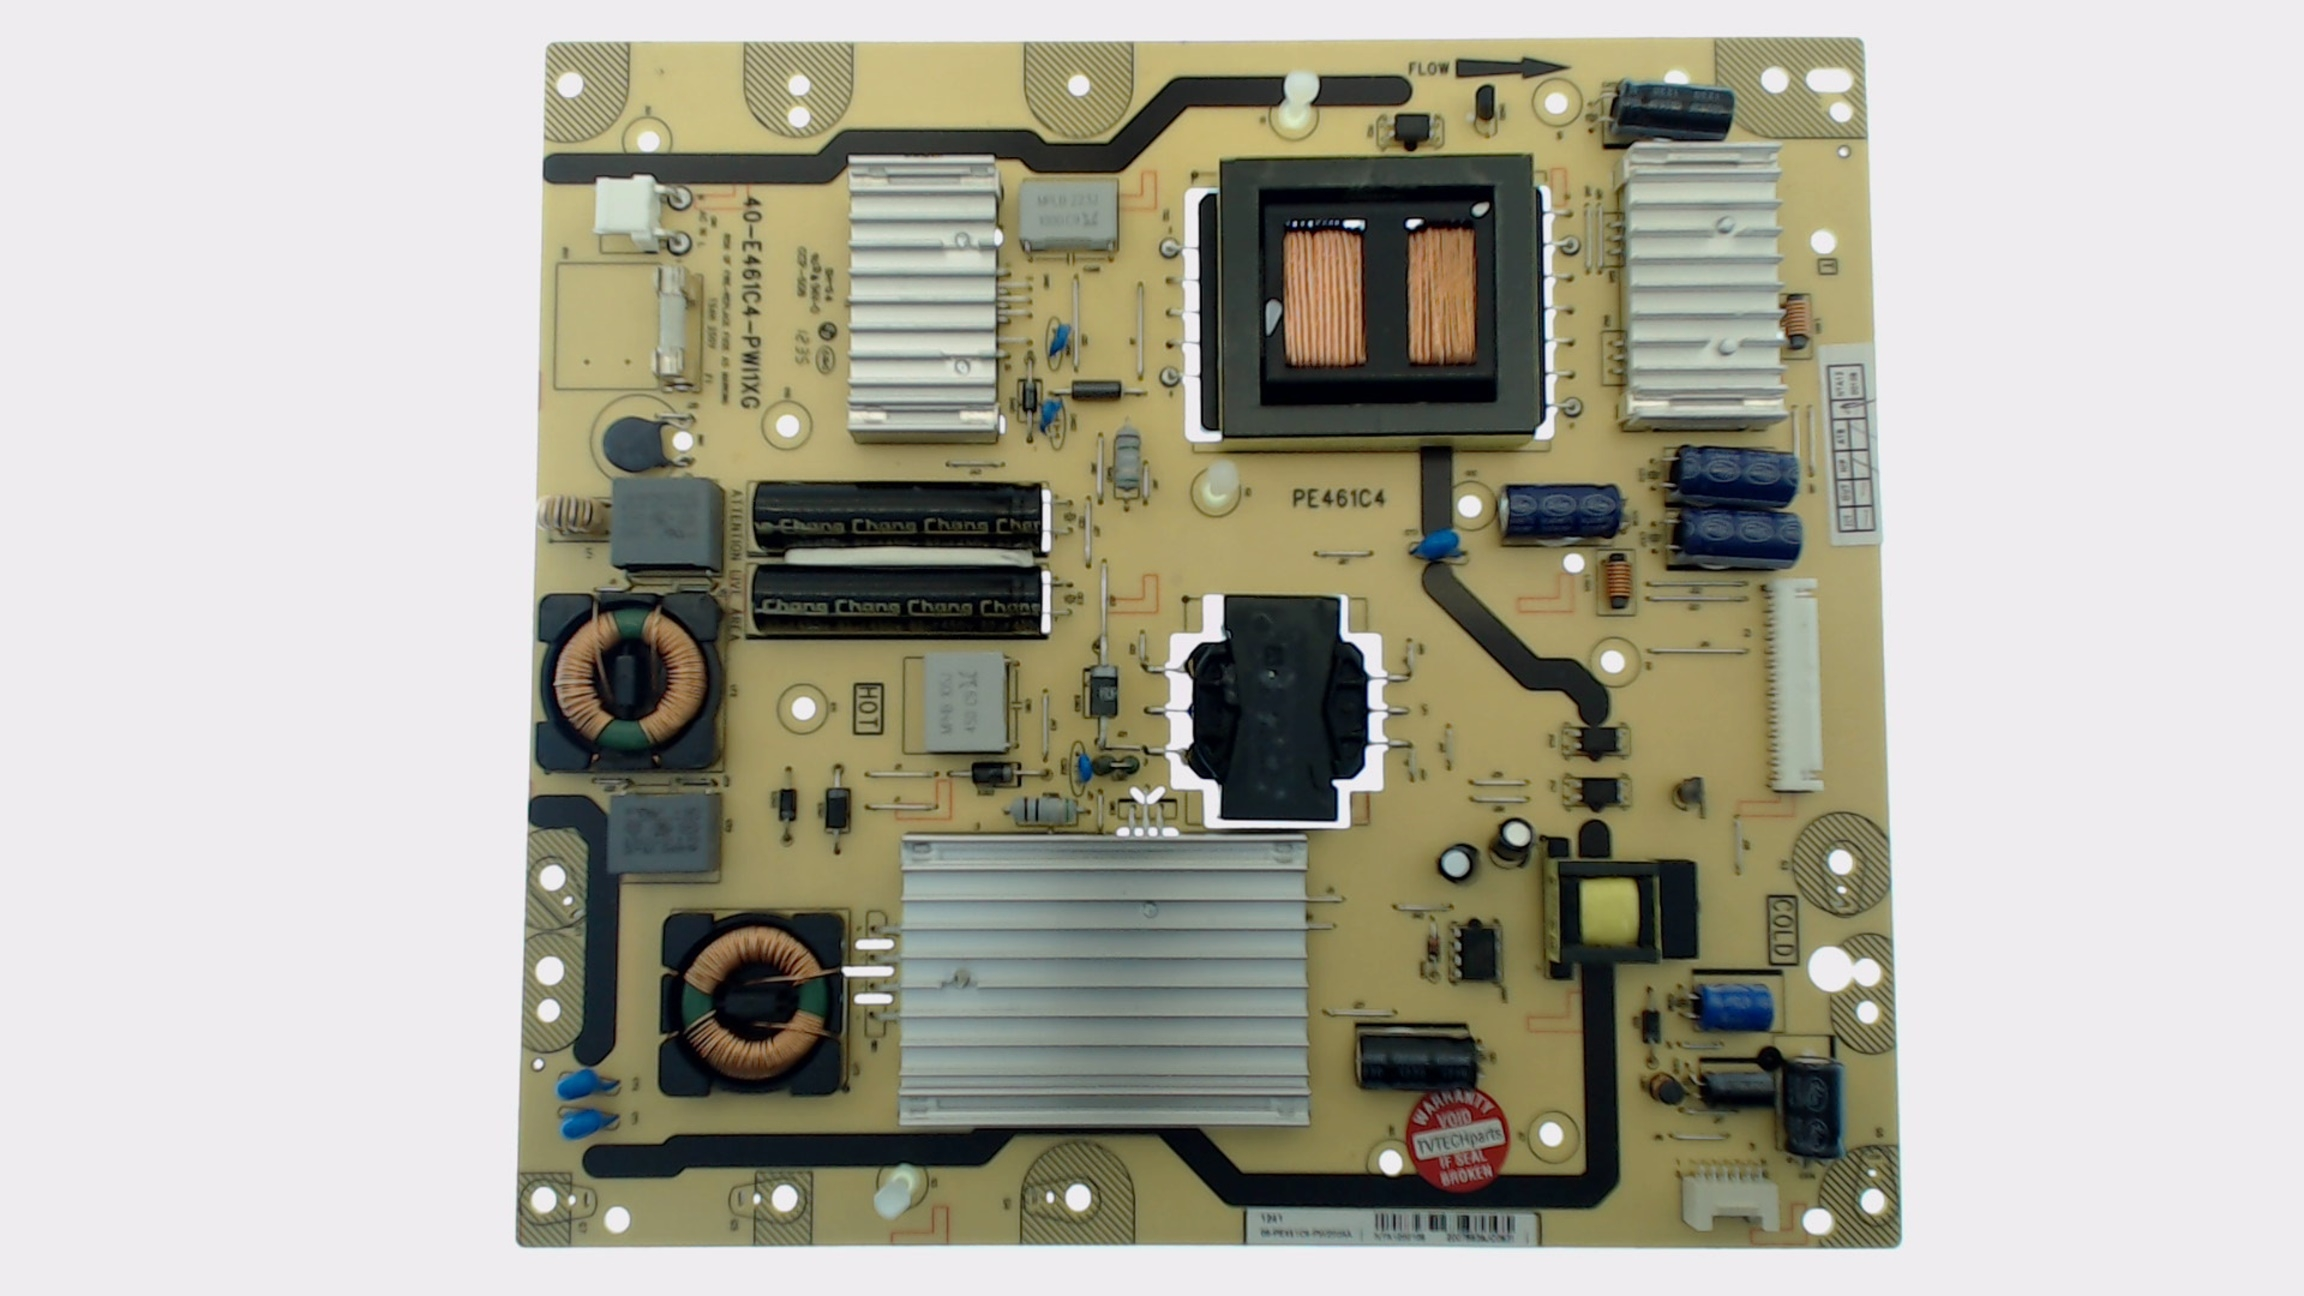 TCL TV Model LE55FHDF3300ZTATCAA Power Supply Board Part Number 08-PE461C4-PW200AA